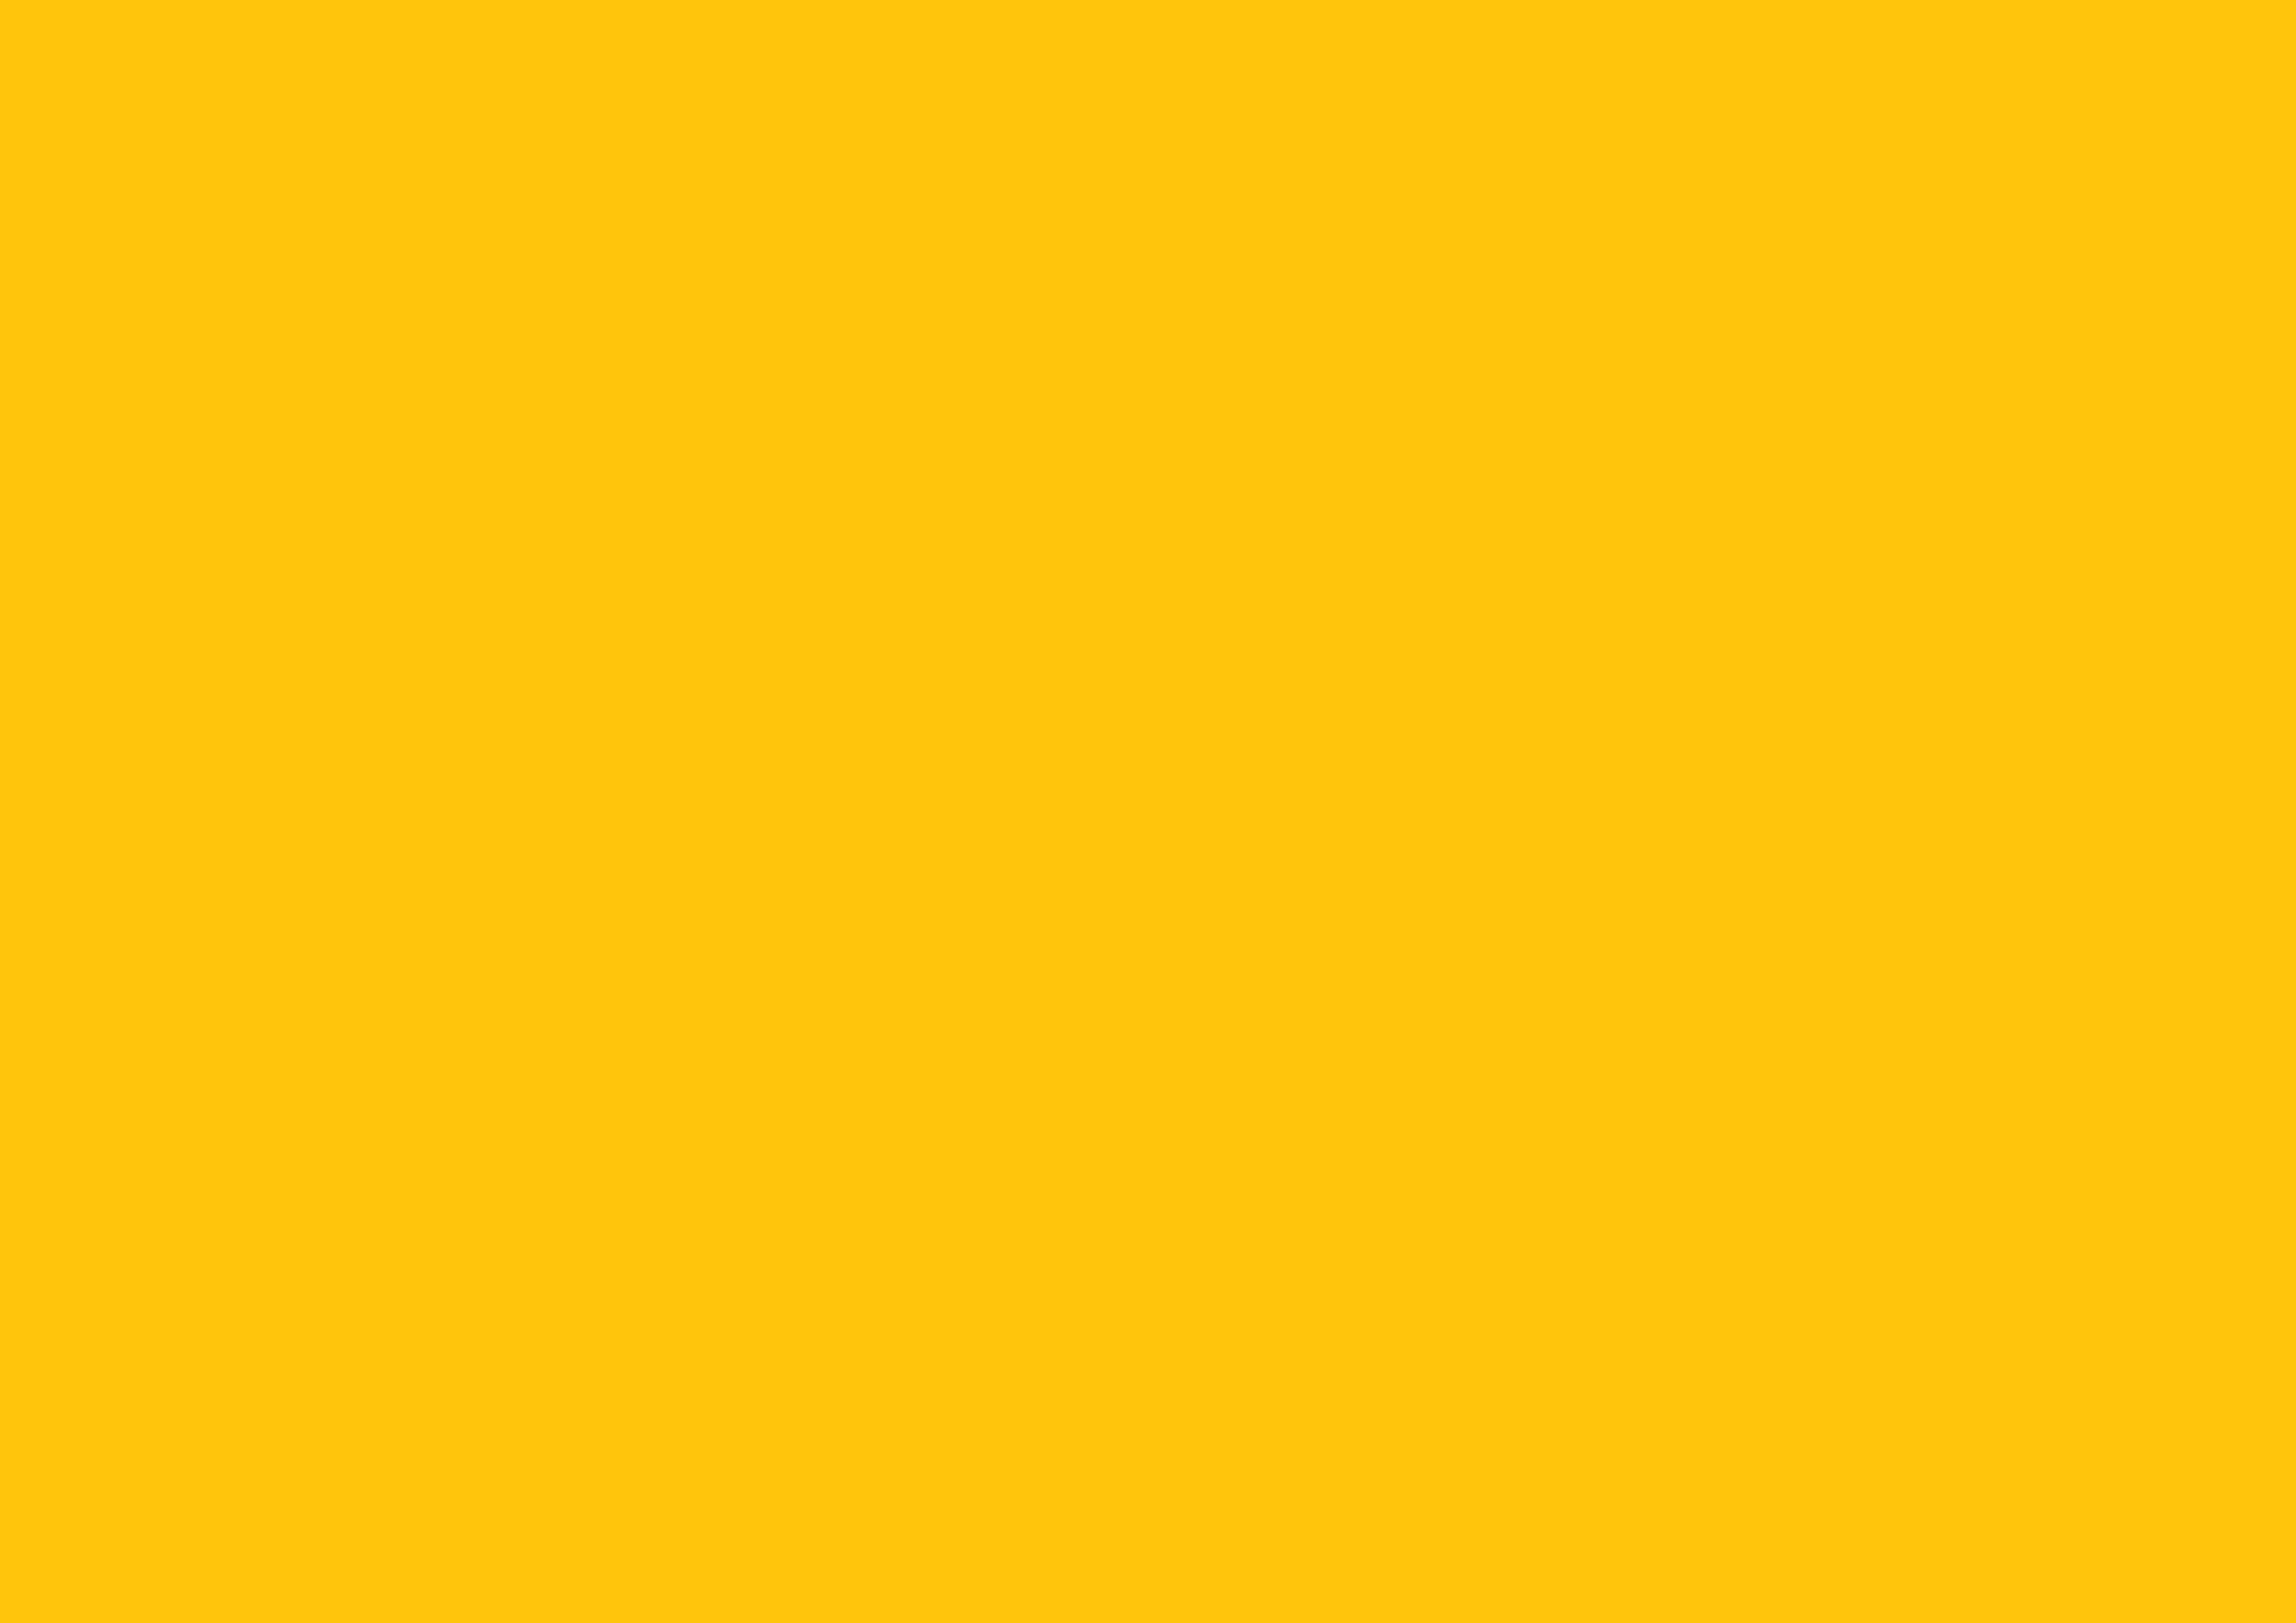 3508x2480 Mikado Yellow Solid Color Background